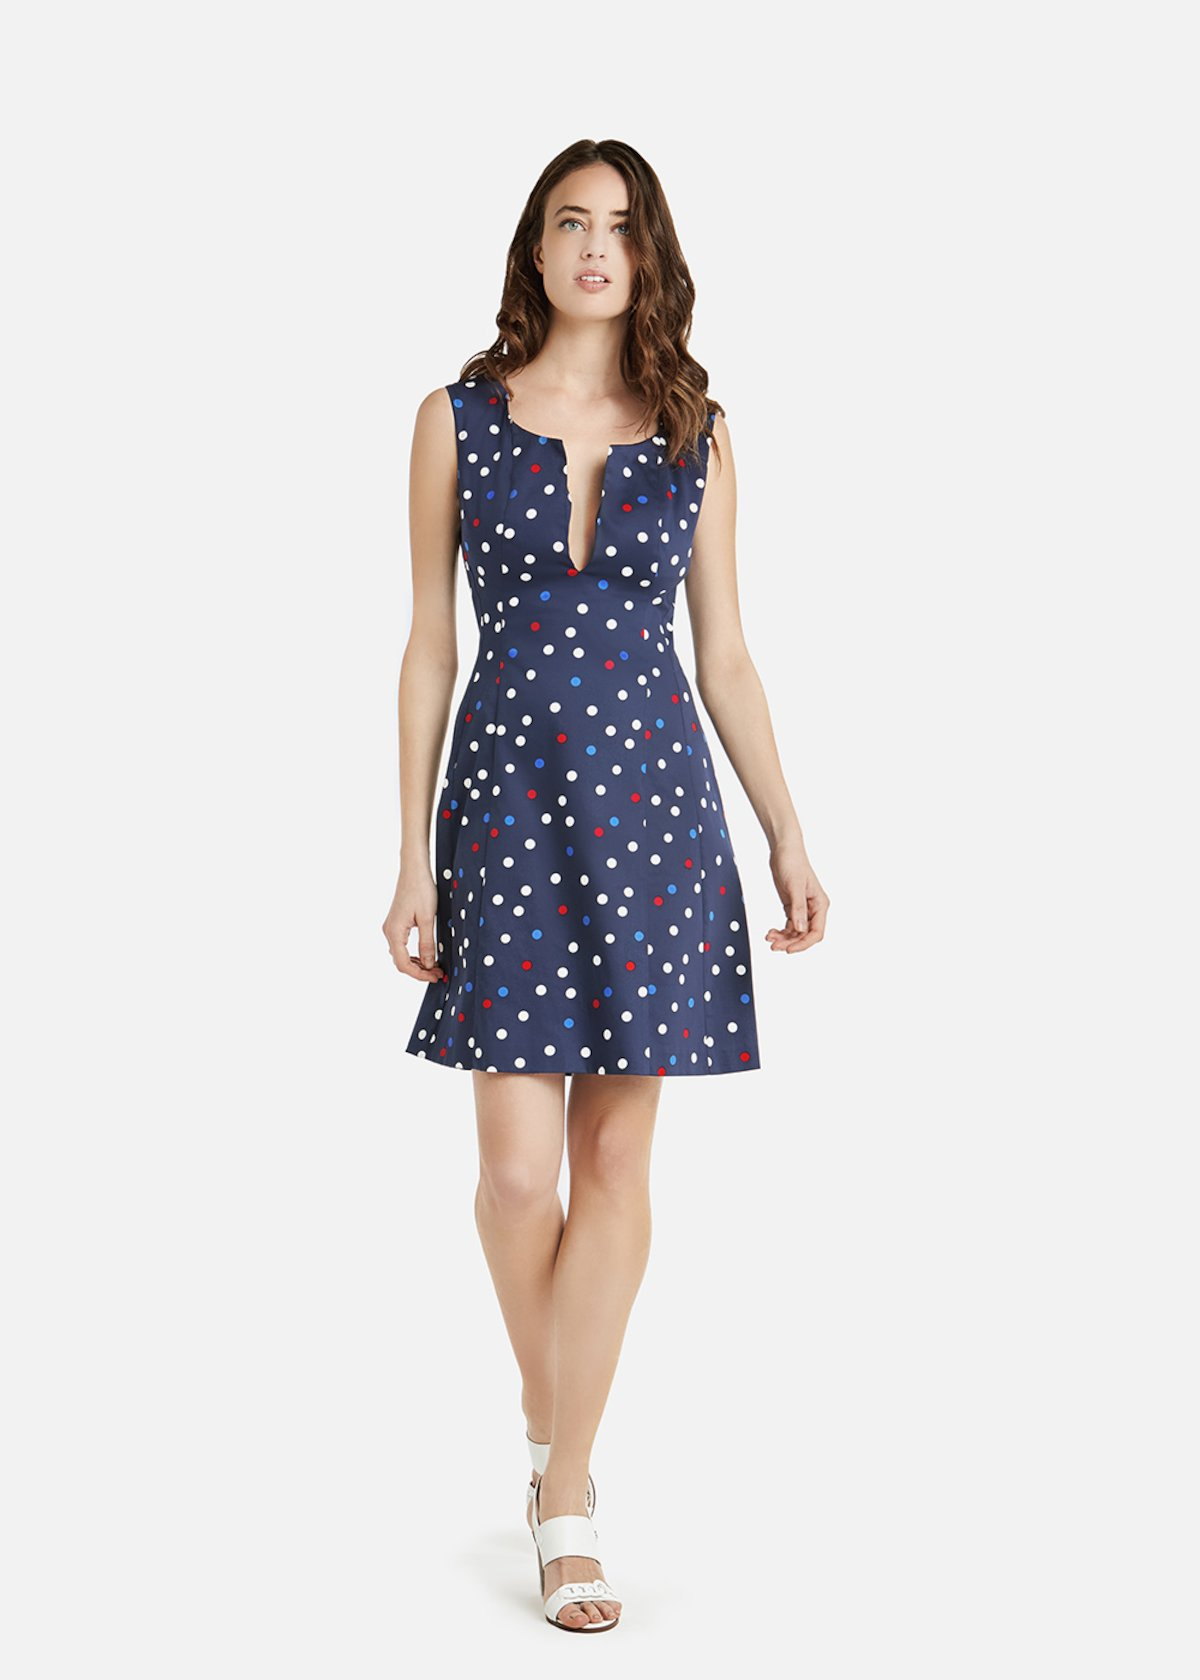 Axos multicolor polka dot dress with slit at the neckline